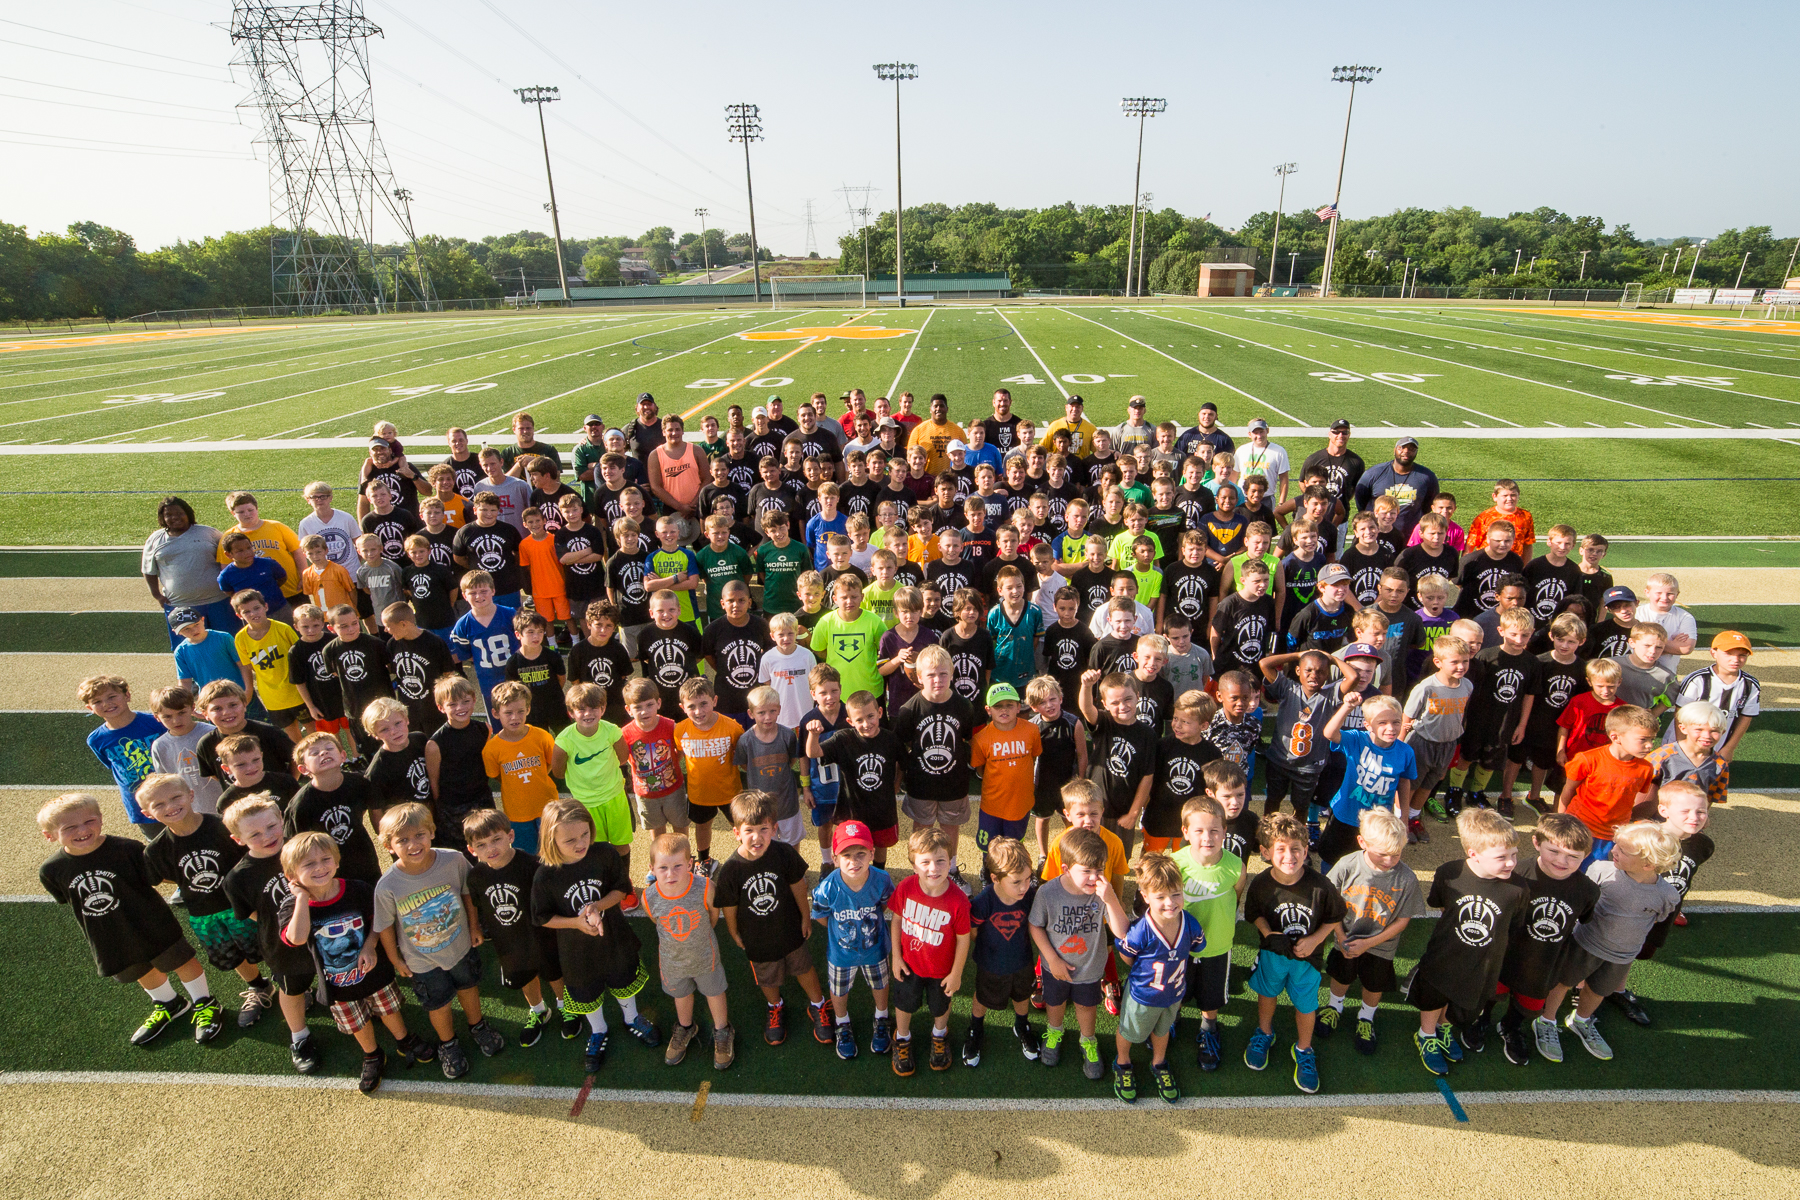 A group shot of the Smith & Smith Football Camp